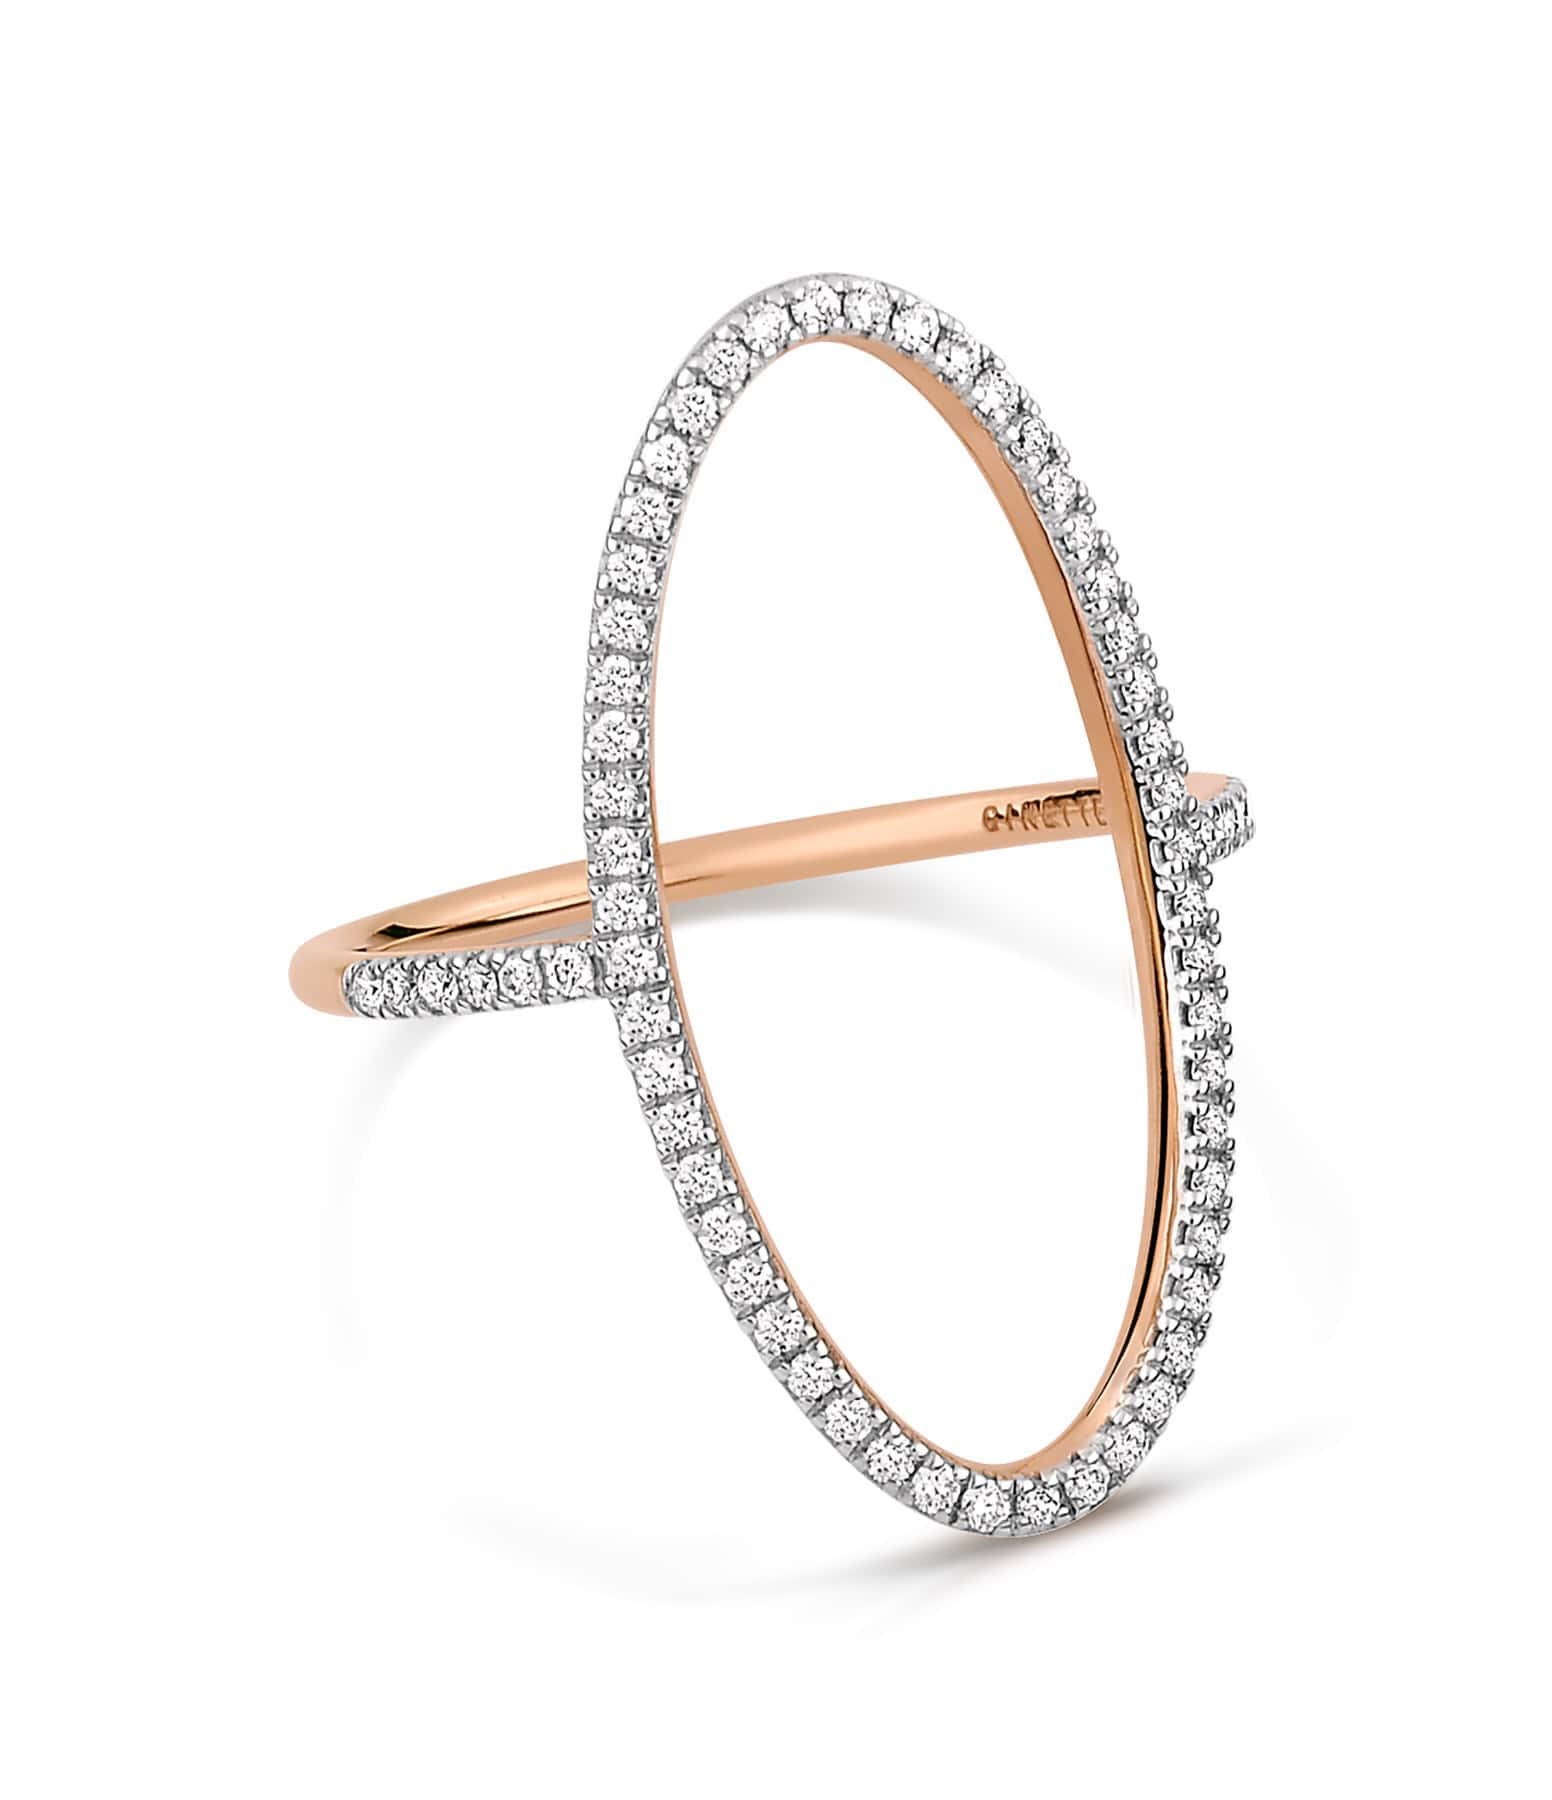 GINETTE_NY - Bague Ellipses Or Rose Diamants